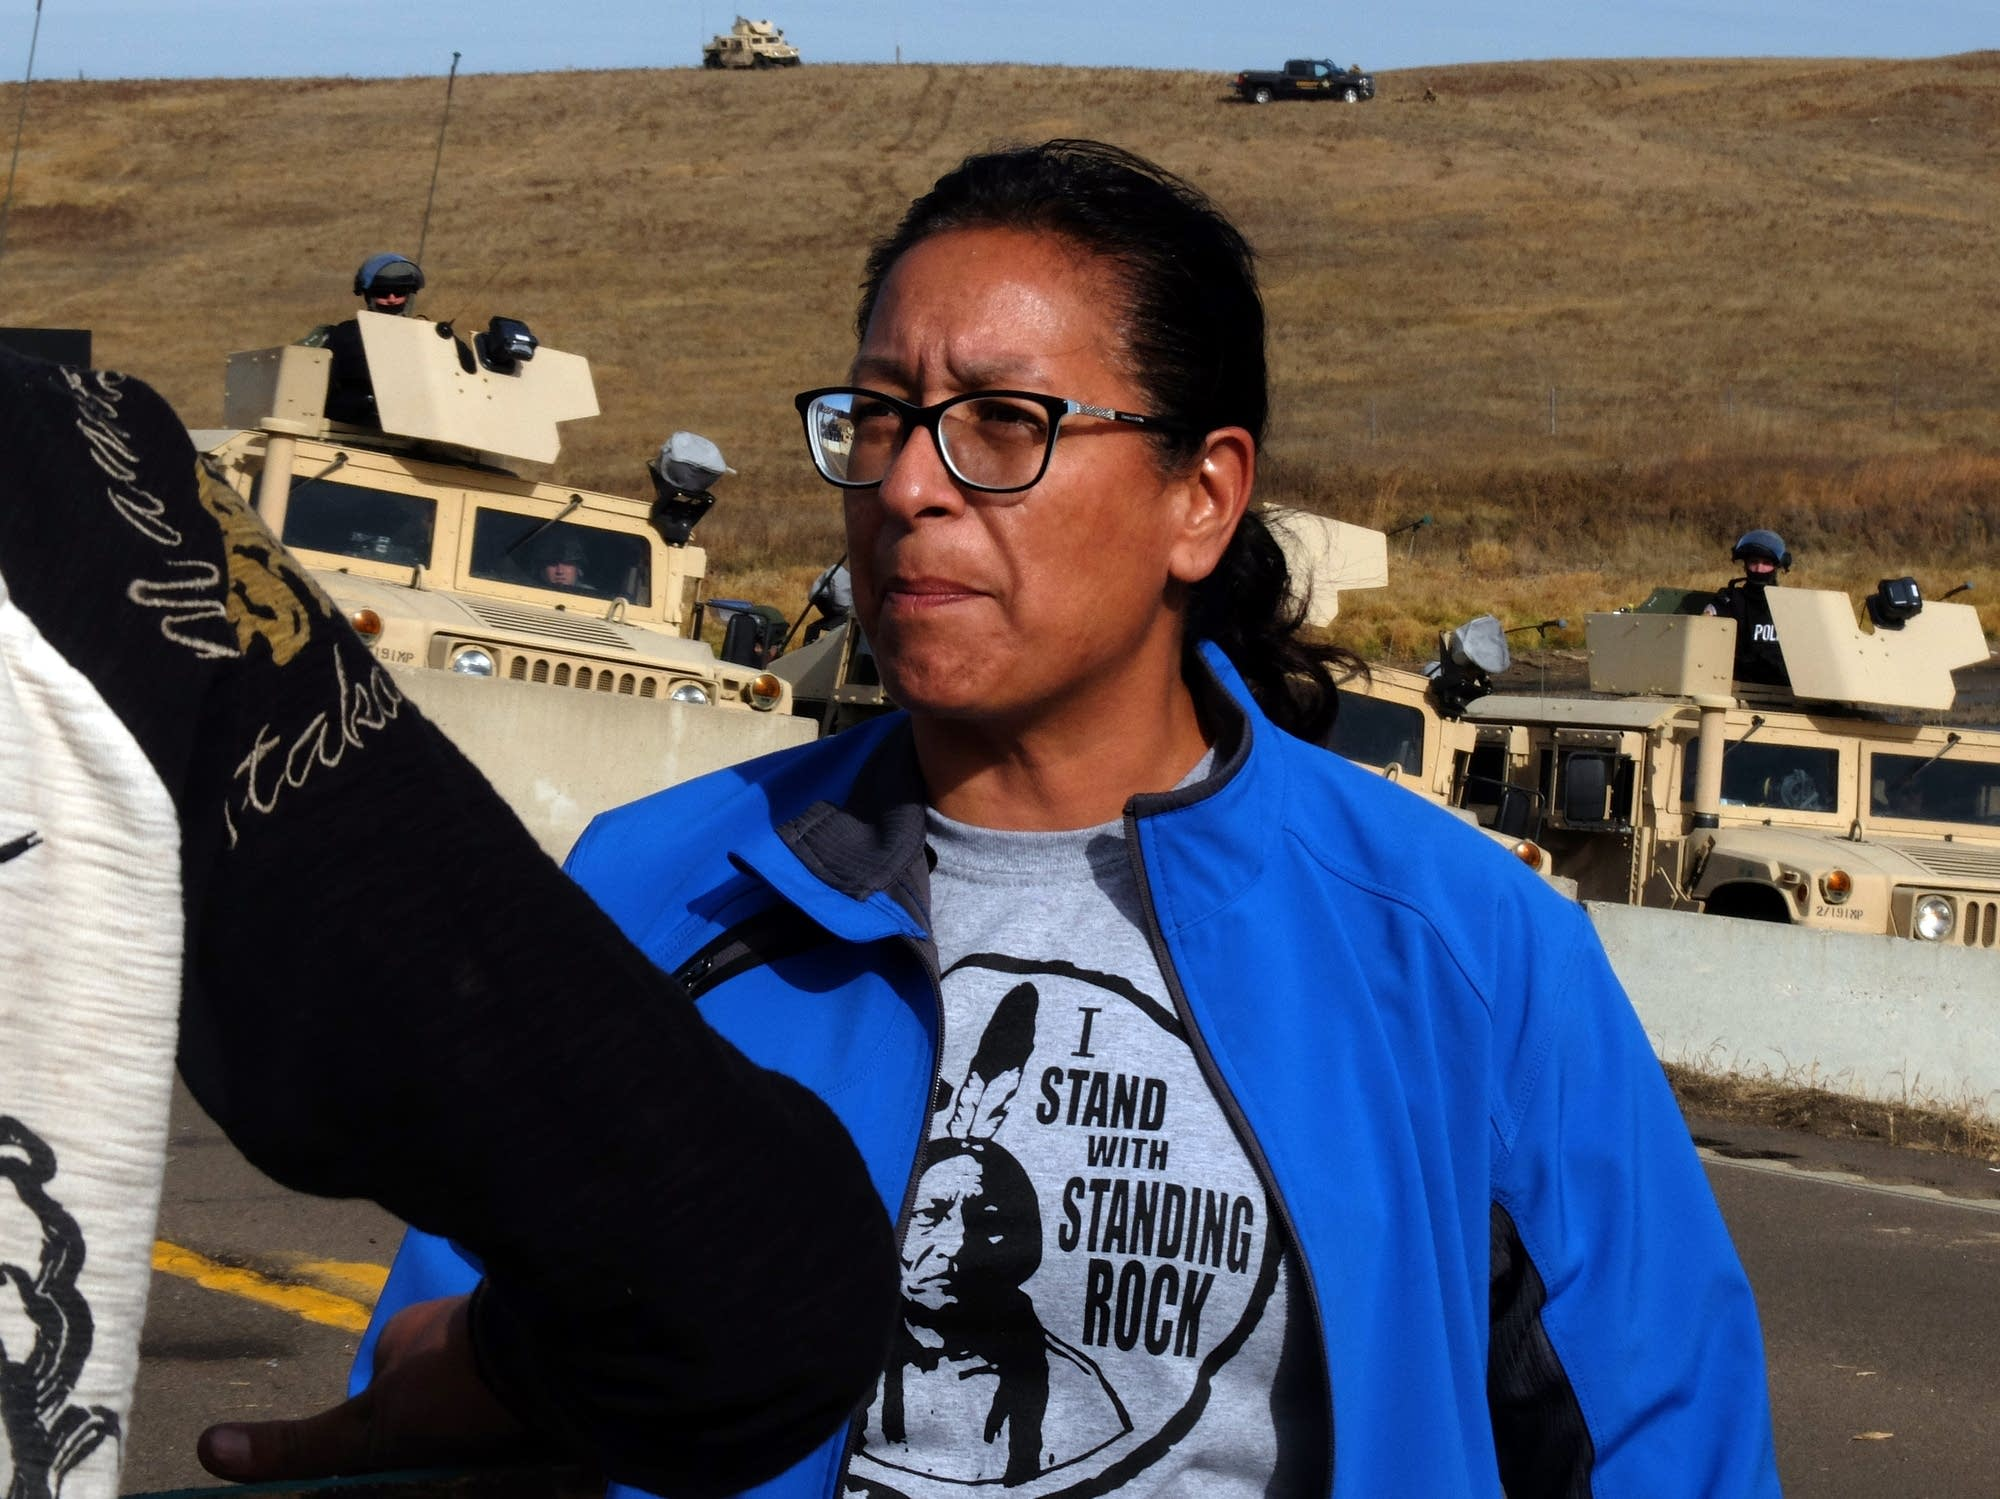 Is Facebook check-in at Standing Rock really concrete action?